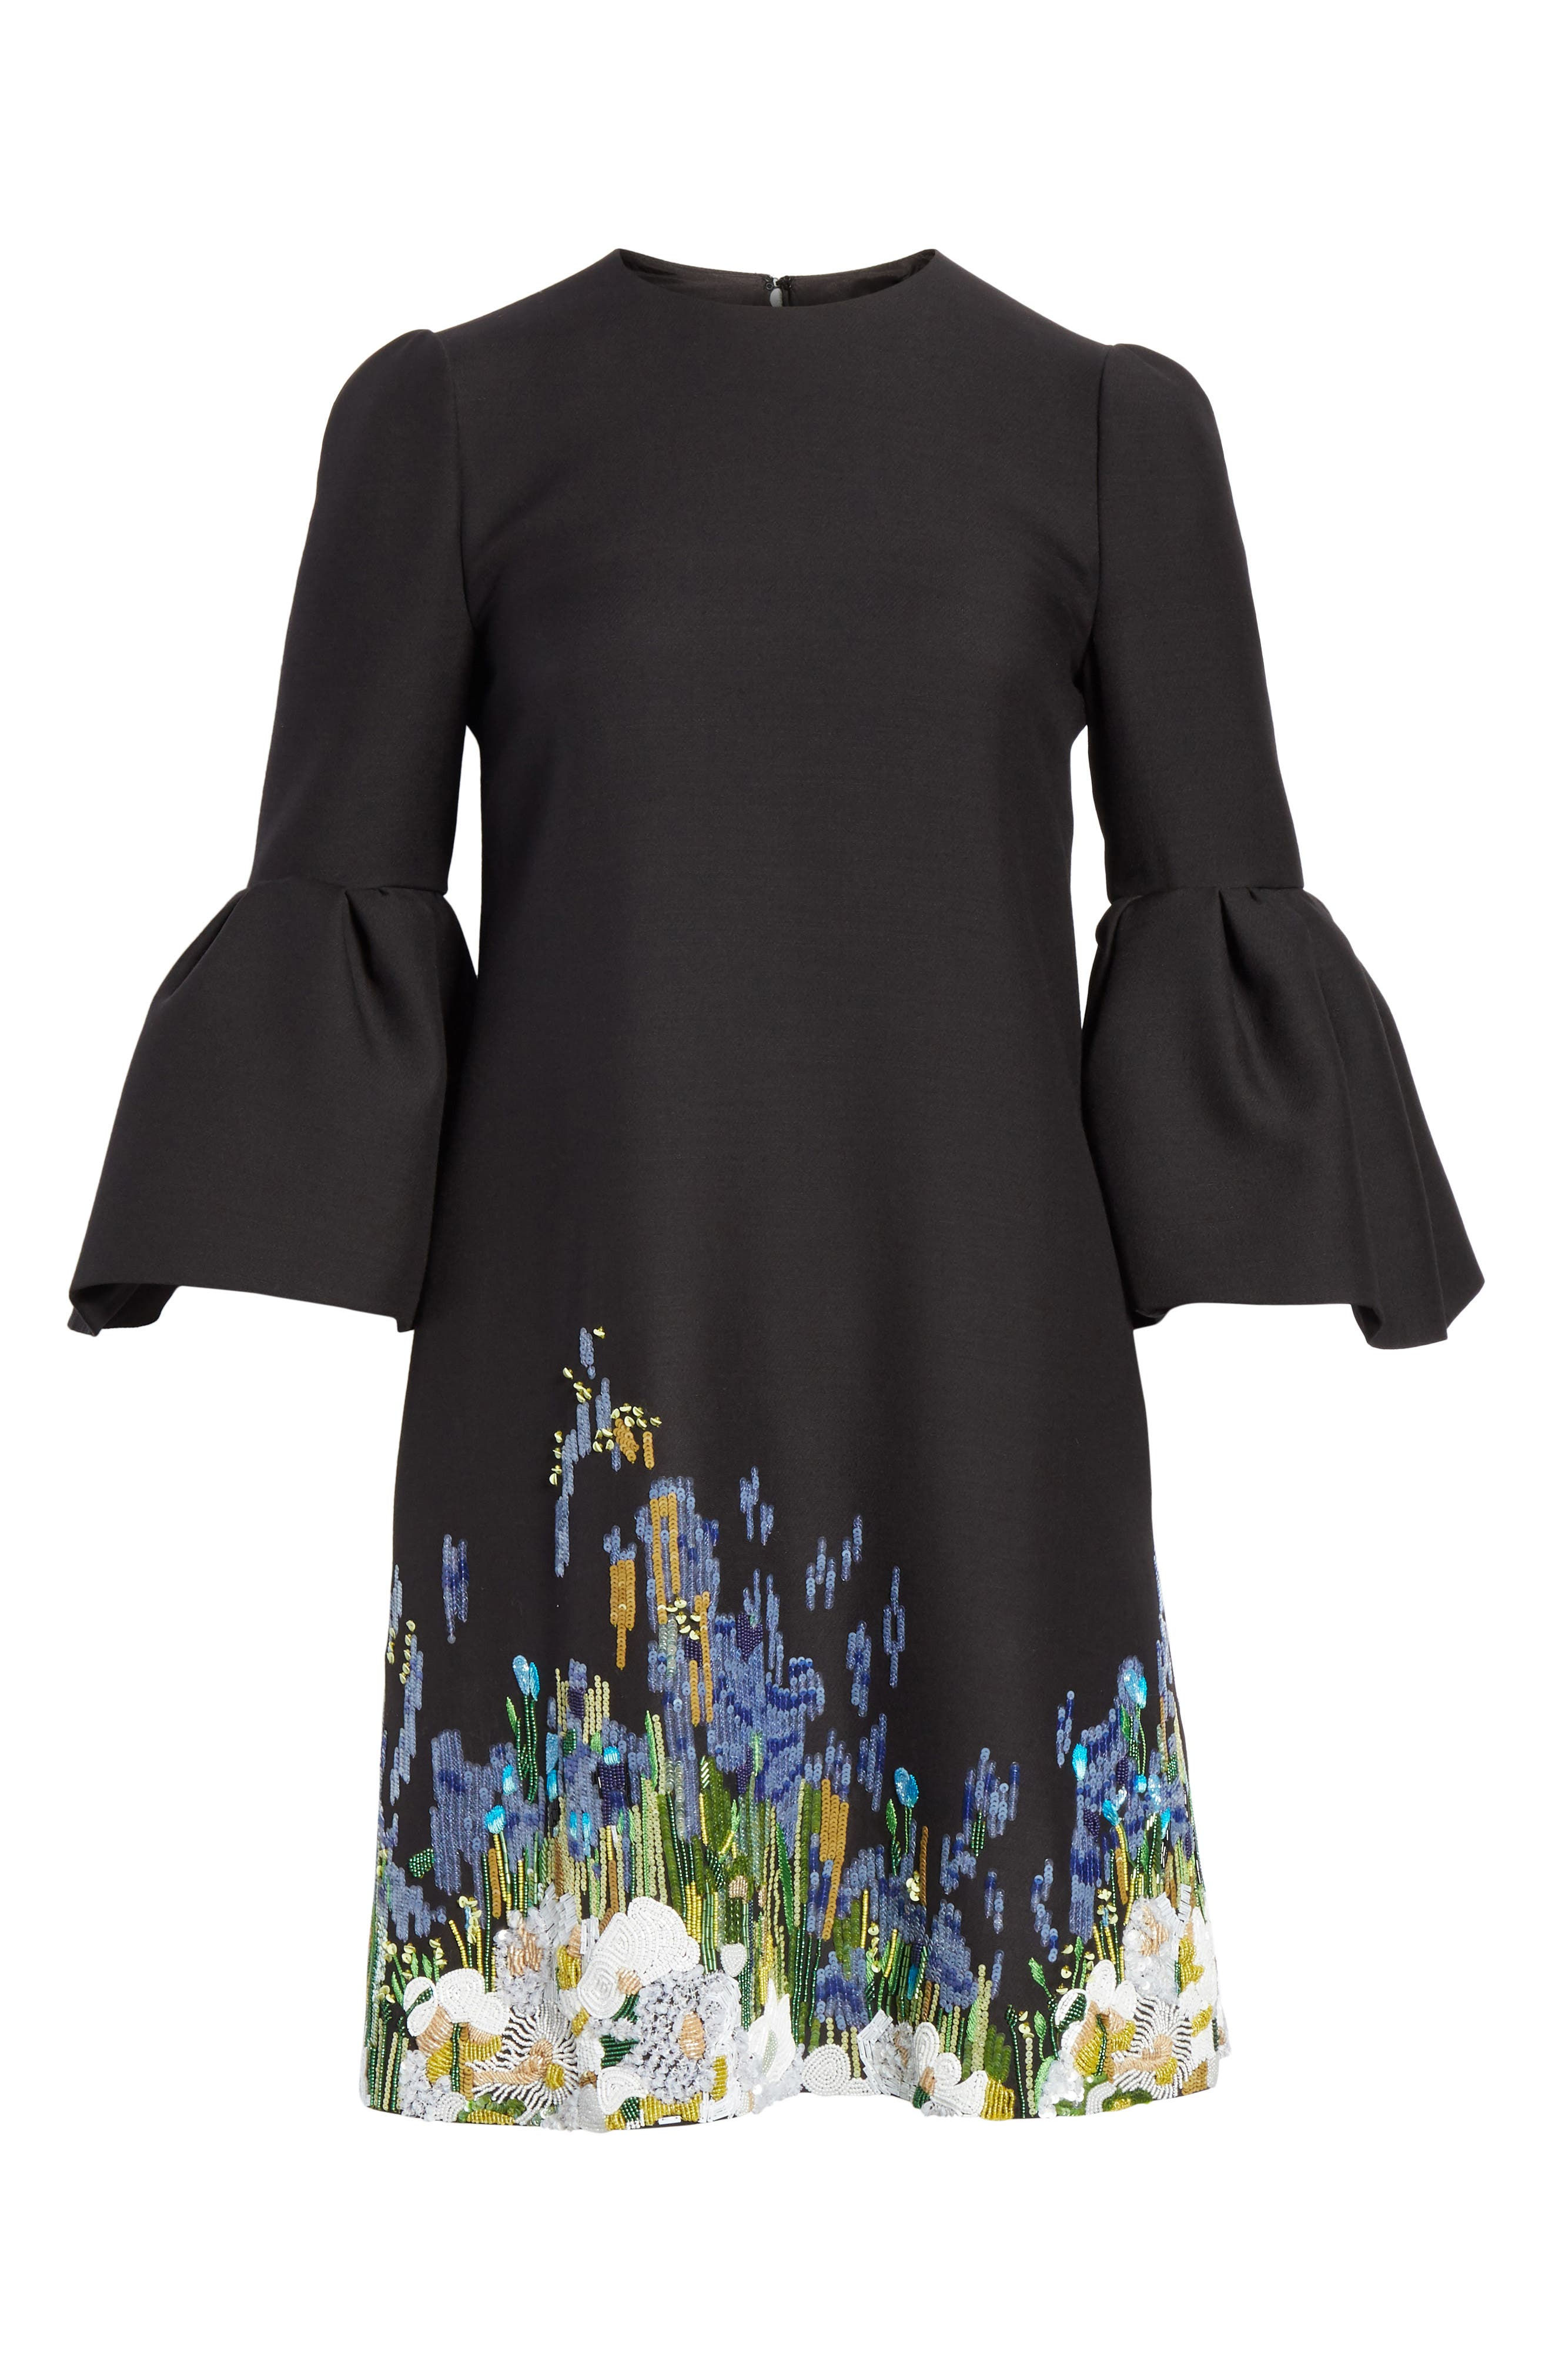 Ruffle Sleeve Floral Embroidered Dress,                             Alternate thumbnail 6, color,                             BLACK MULTI